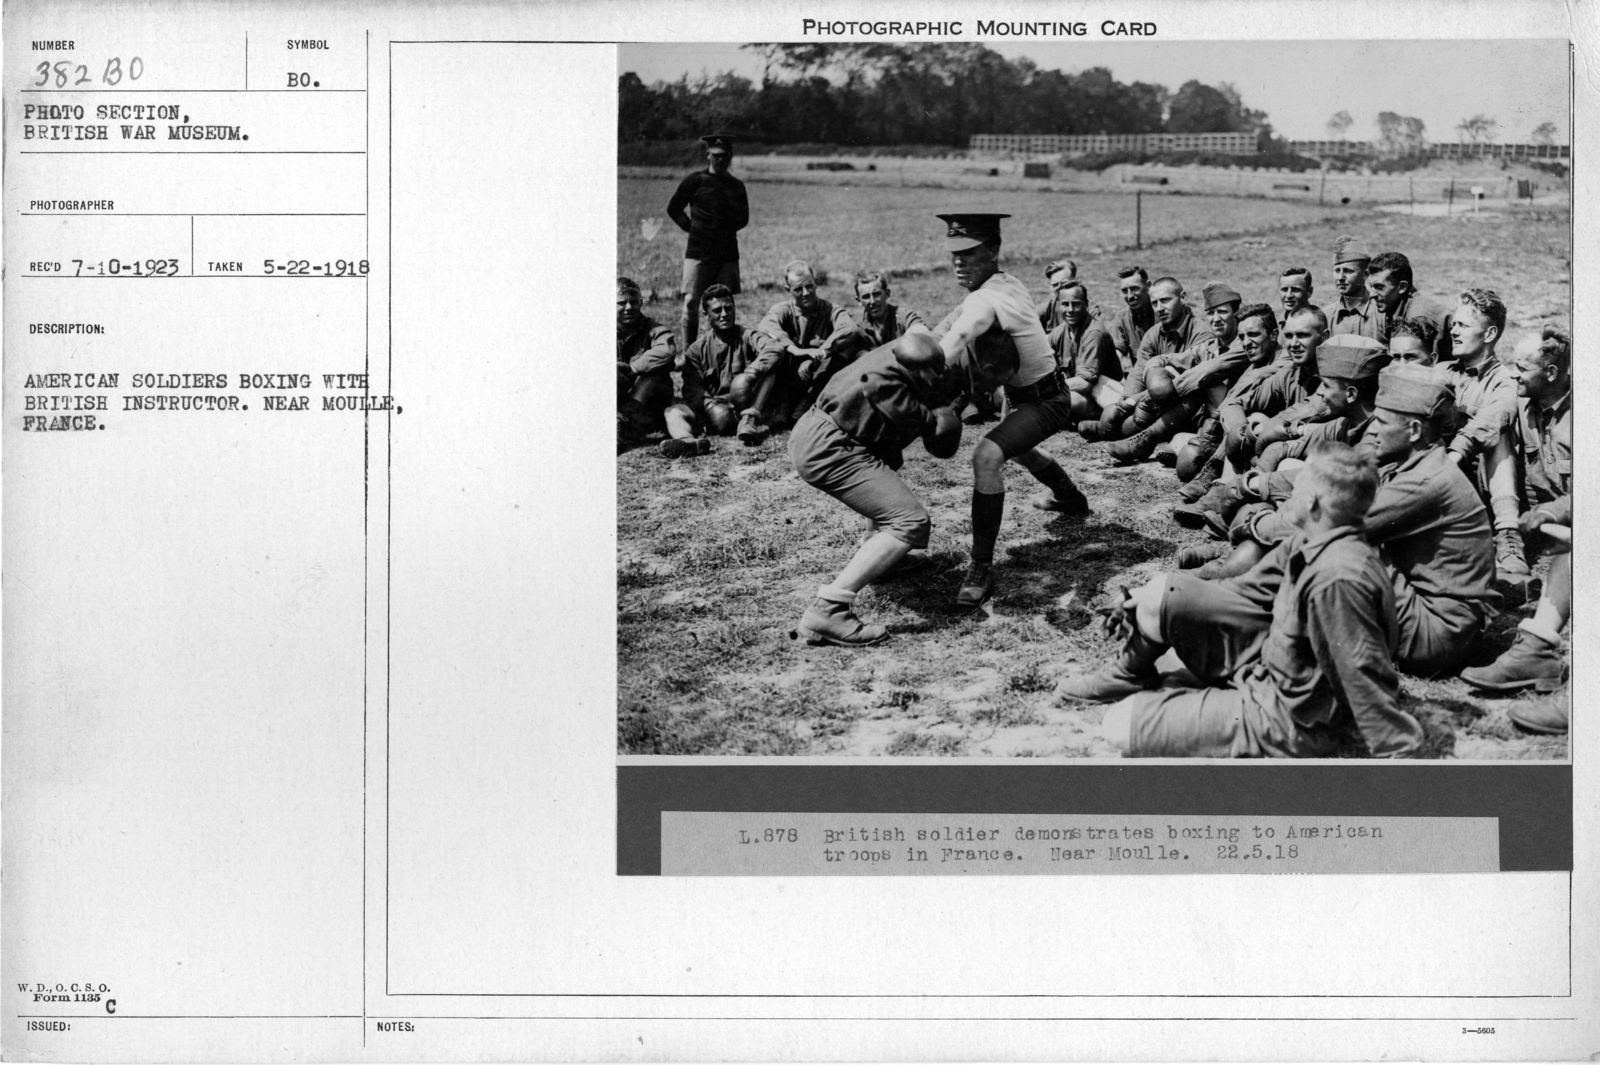 American soldiers boxing with British instructor. Near Moule France; 5/22/1918